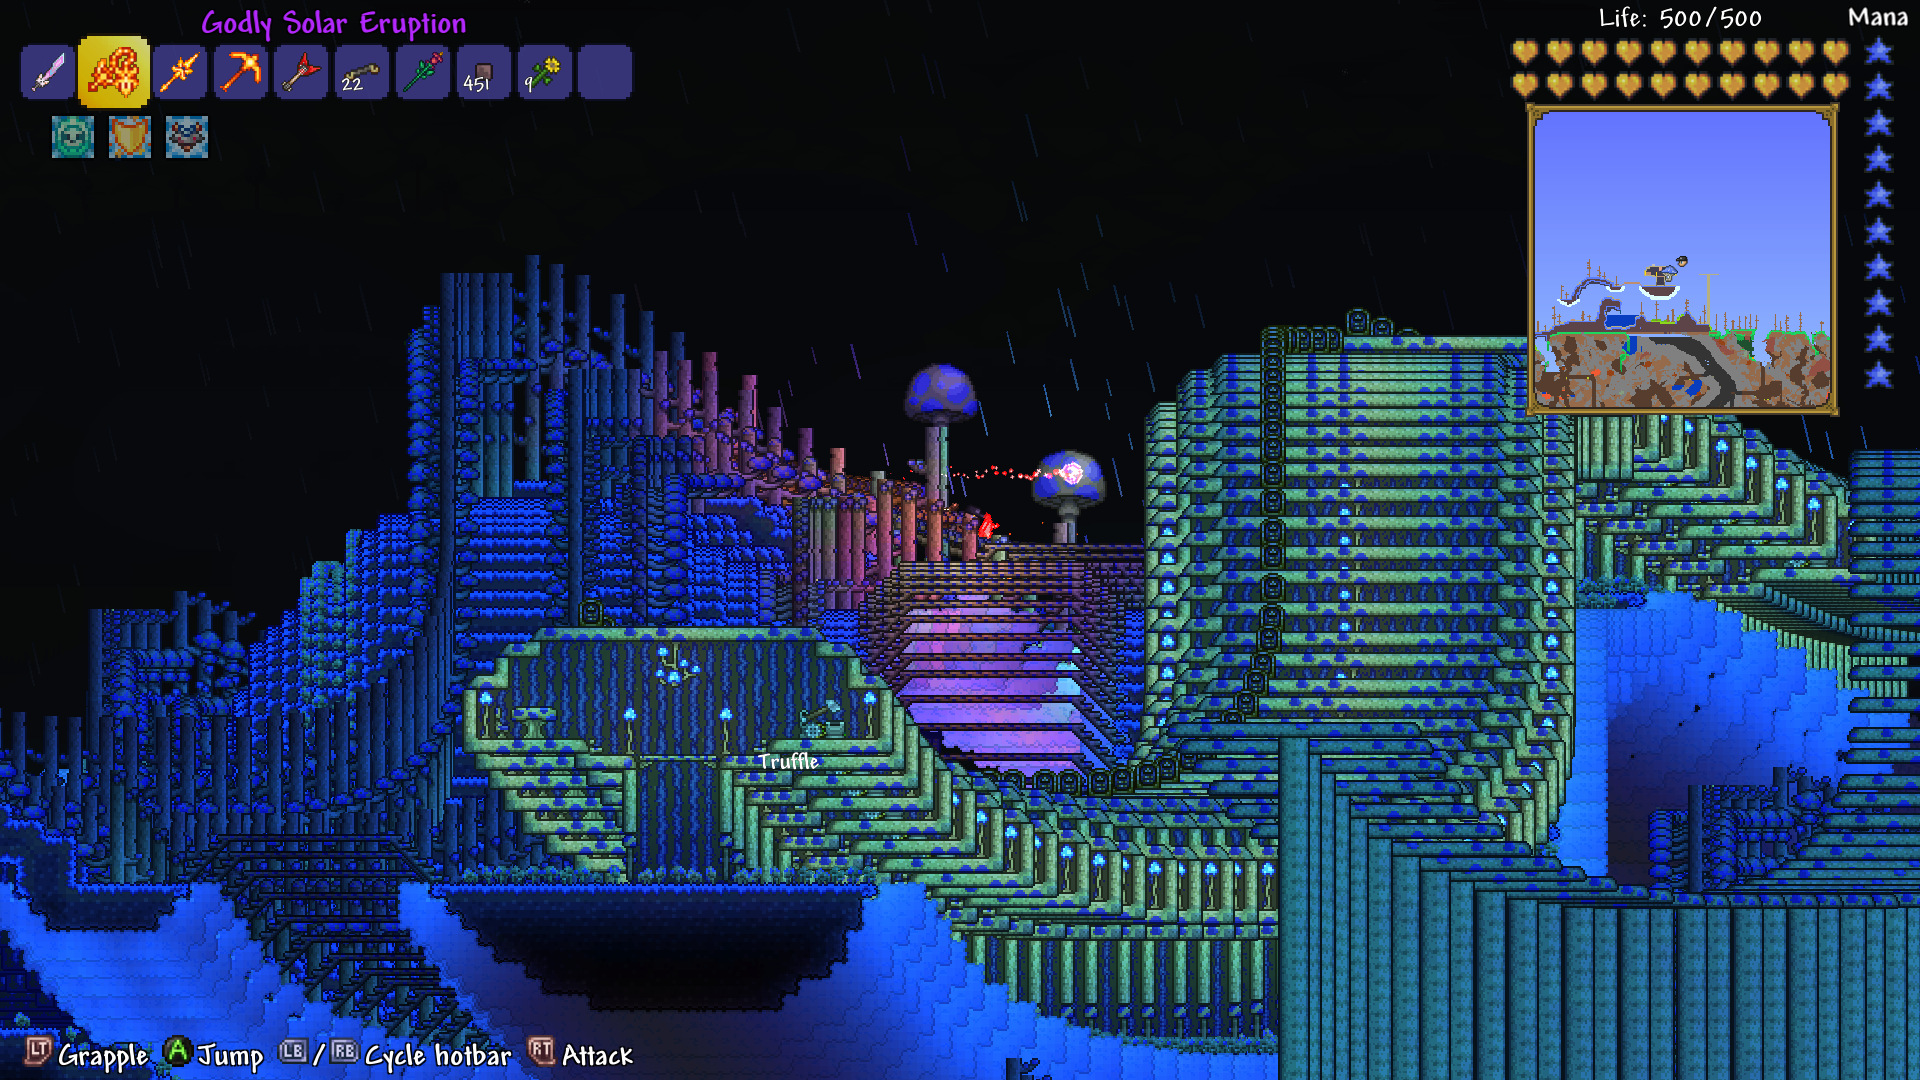 Xbox One - Intense Graphical Glitch | Terraria Community Forums